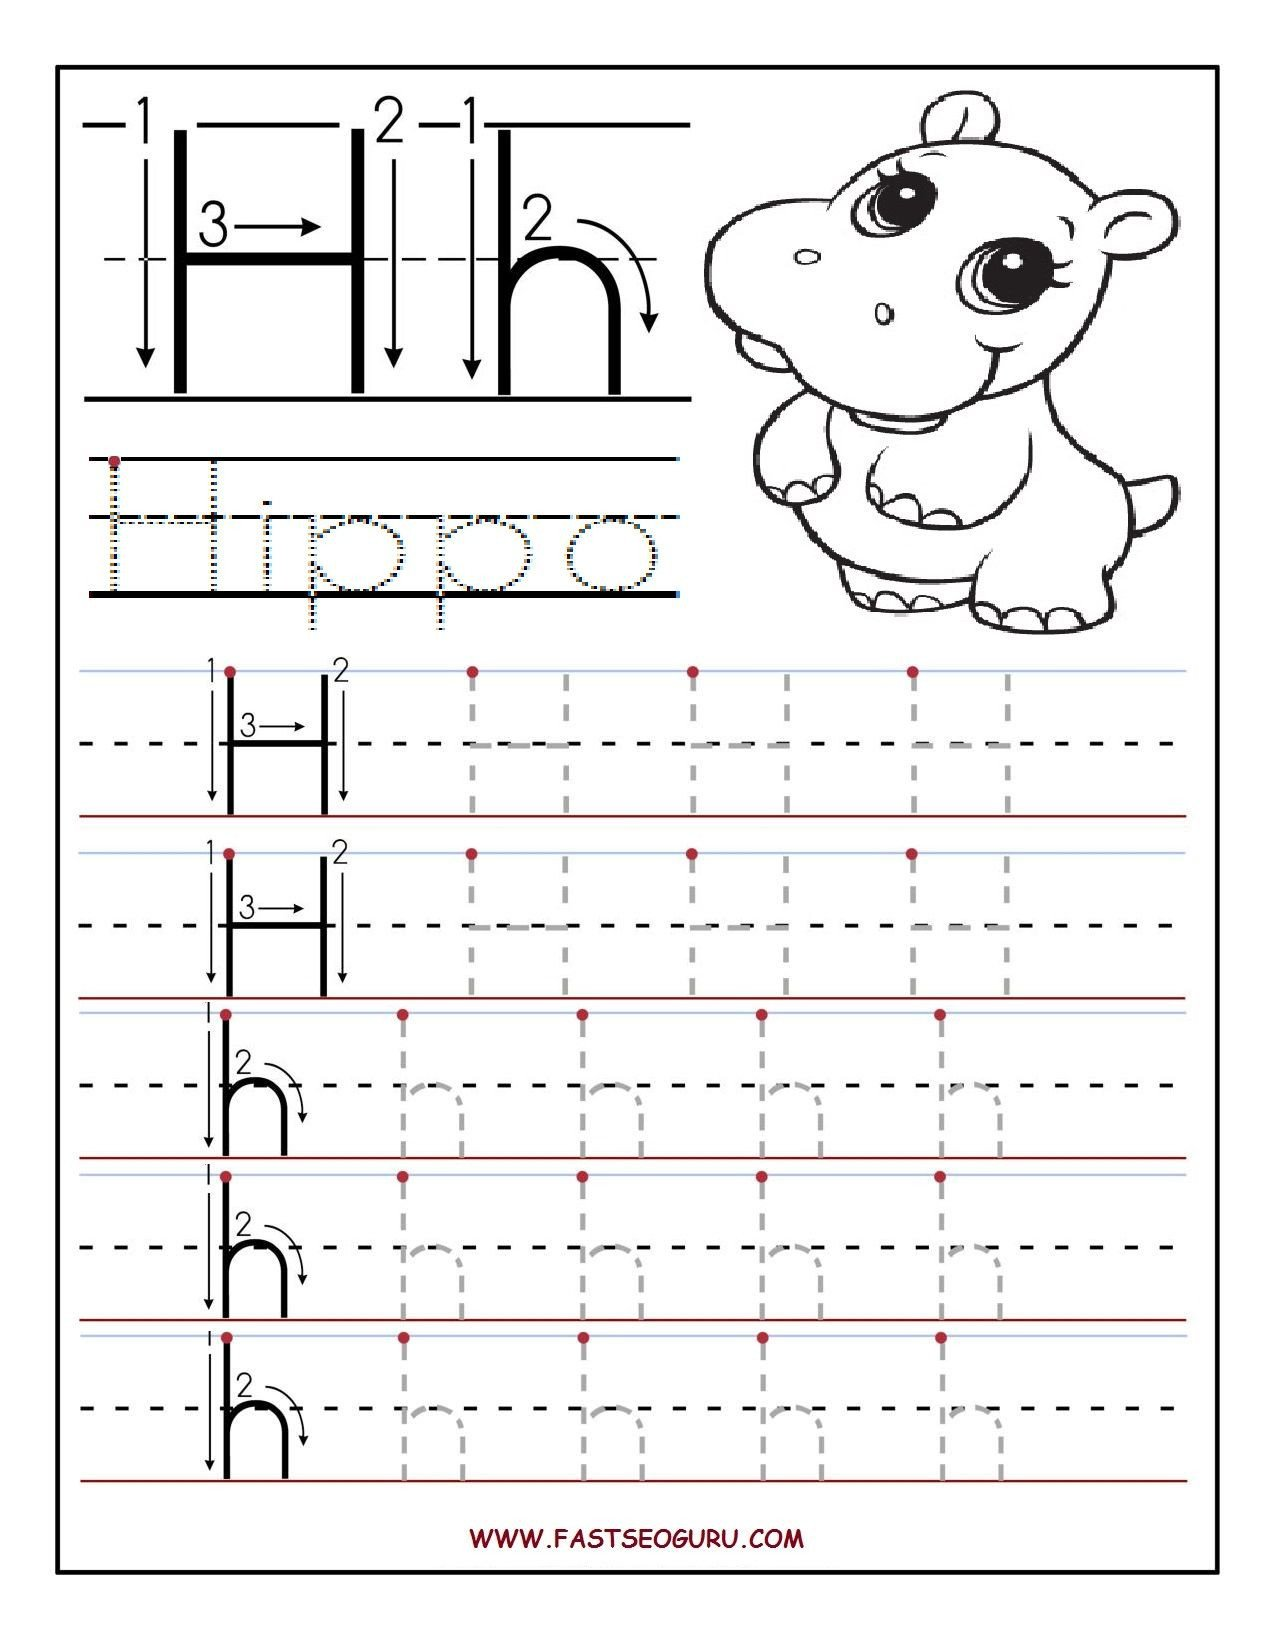 Letter H Tracing Worksheets Preschool Pin by Kassandra Castellon On Letter H Pre K